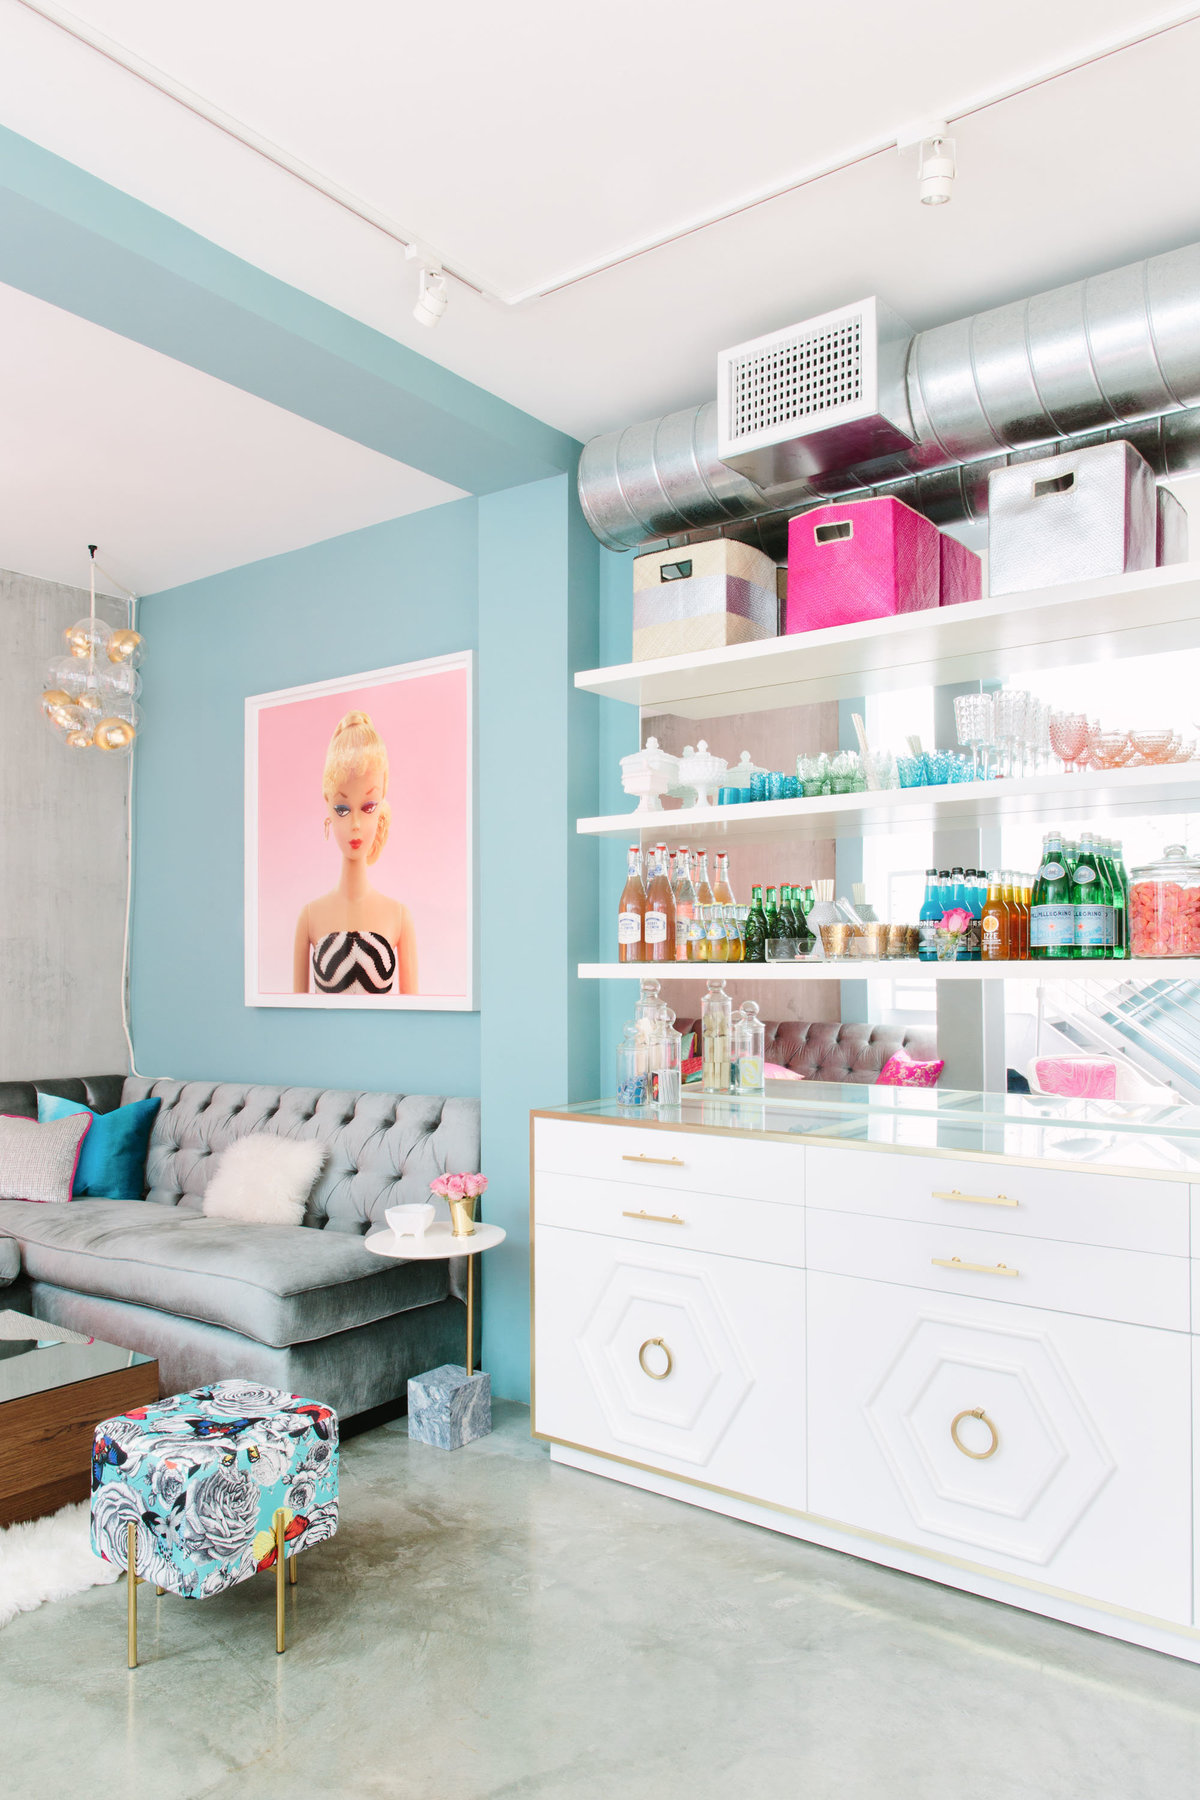 Glamour-Nest-Los-Angeles-Girly-Glamour-Interior-Living-Room-12